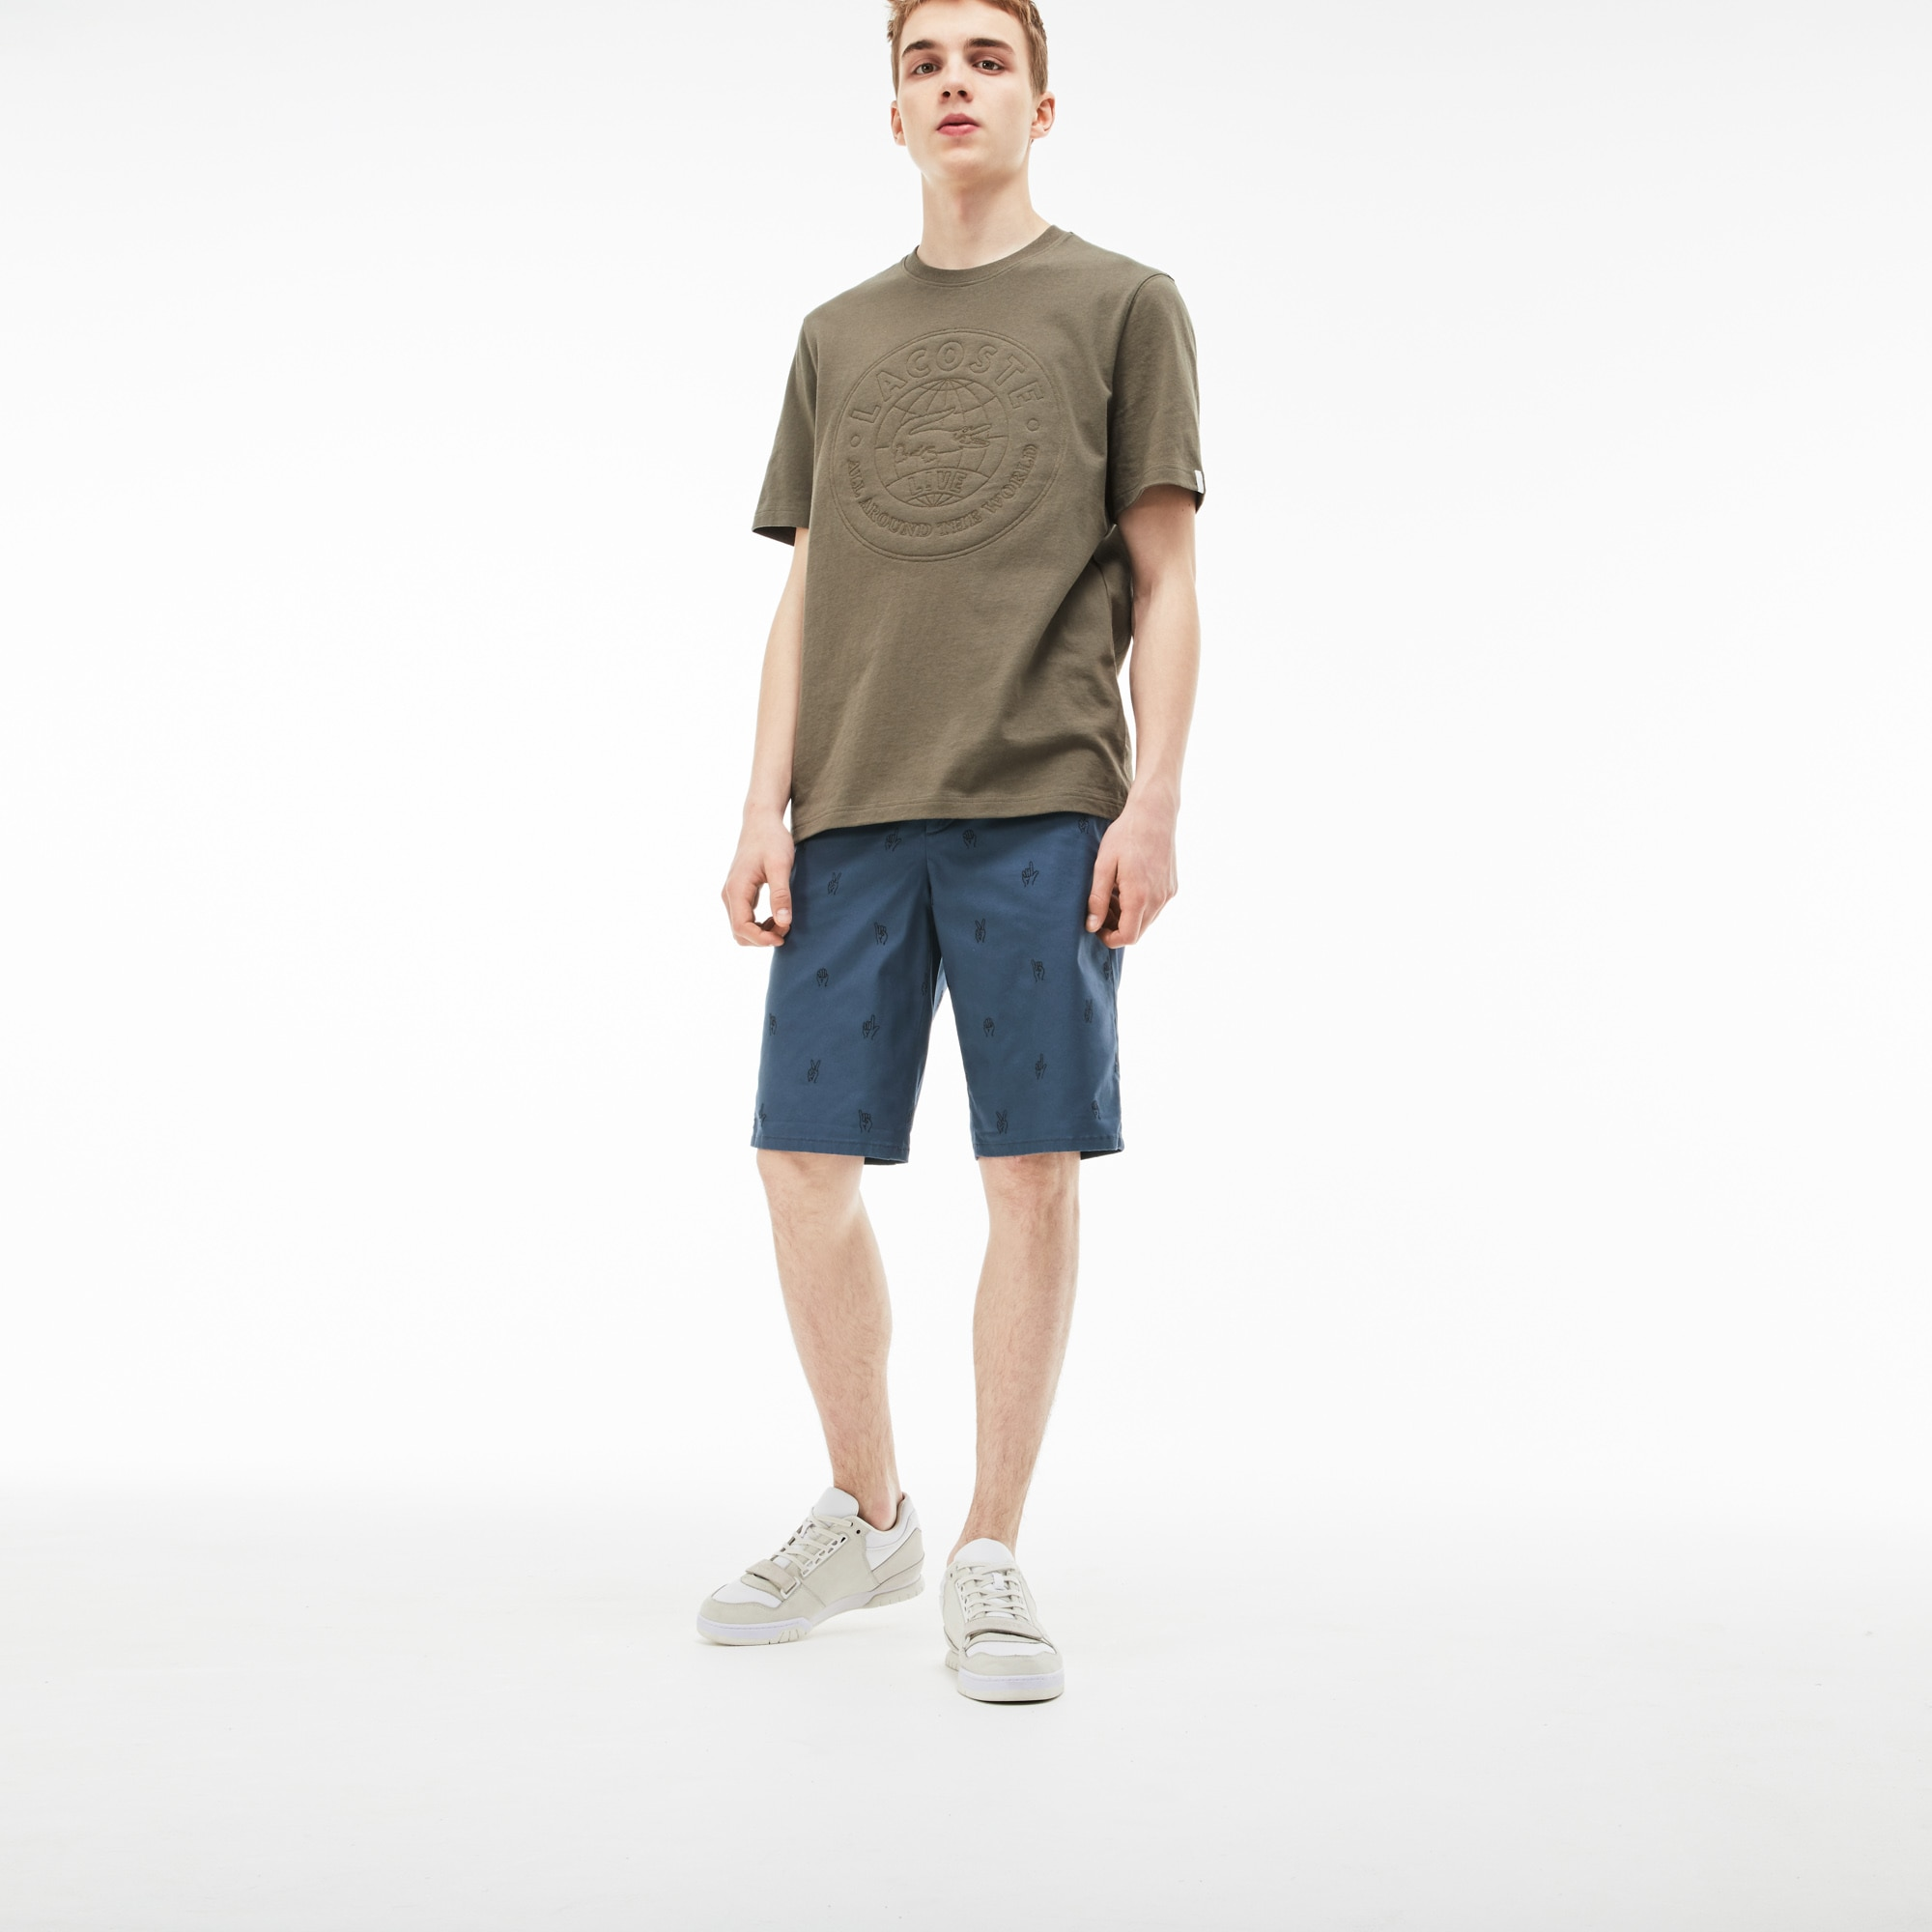 Men's Lacoste LIVE Mini Embroidery Stretch Cotton Twill Bermuda Shorts